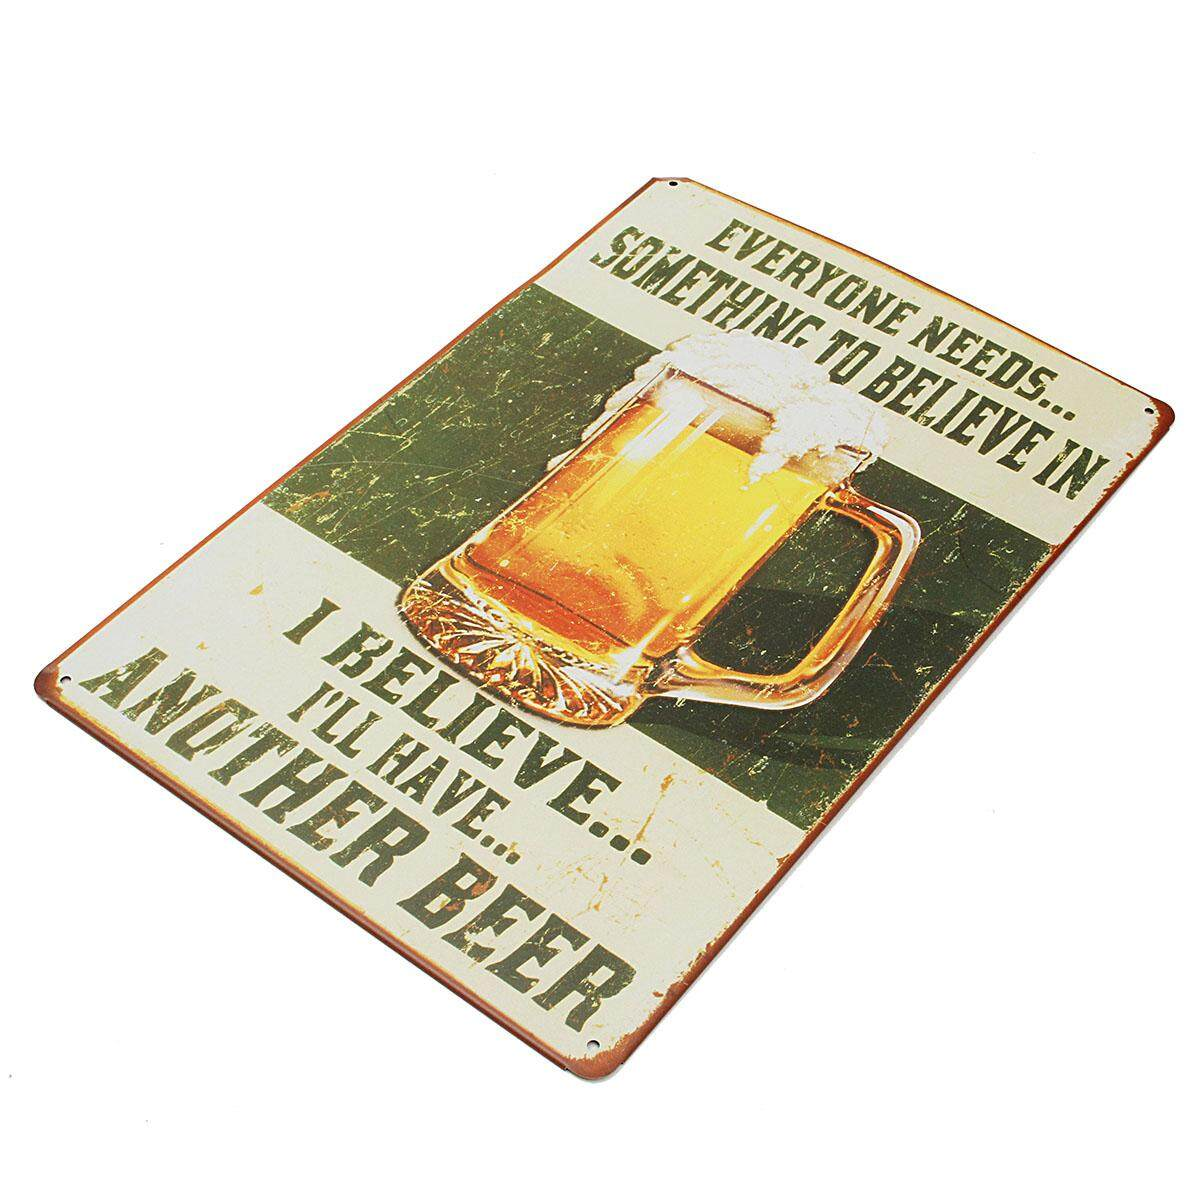 Cool Beer Poster Metal Plate Rusted Tin Sign Man Cave Home Pub Bar Wall Decor By Moonbeam.